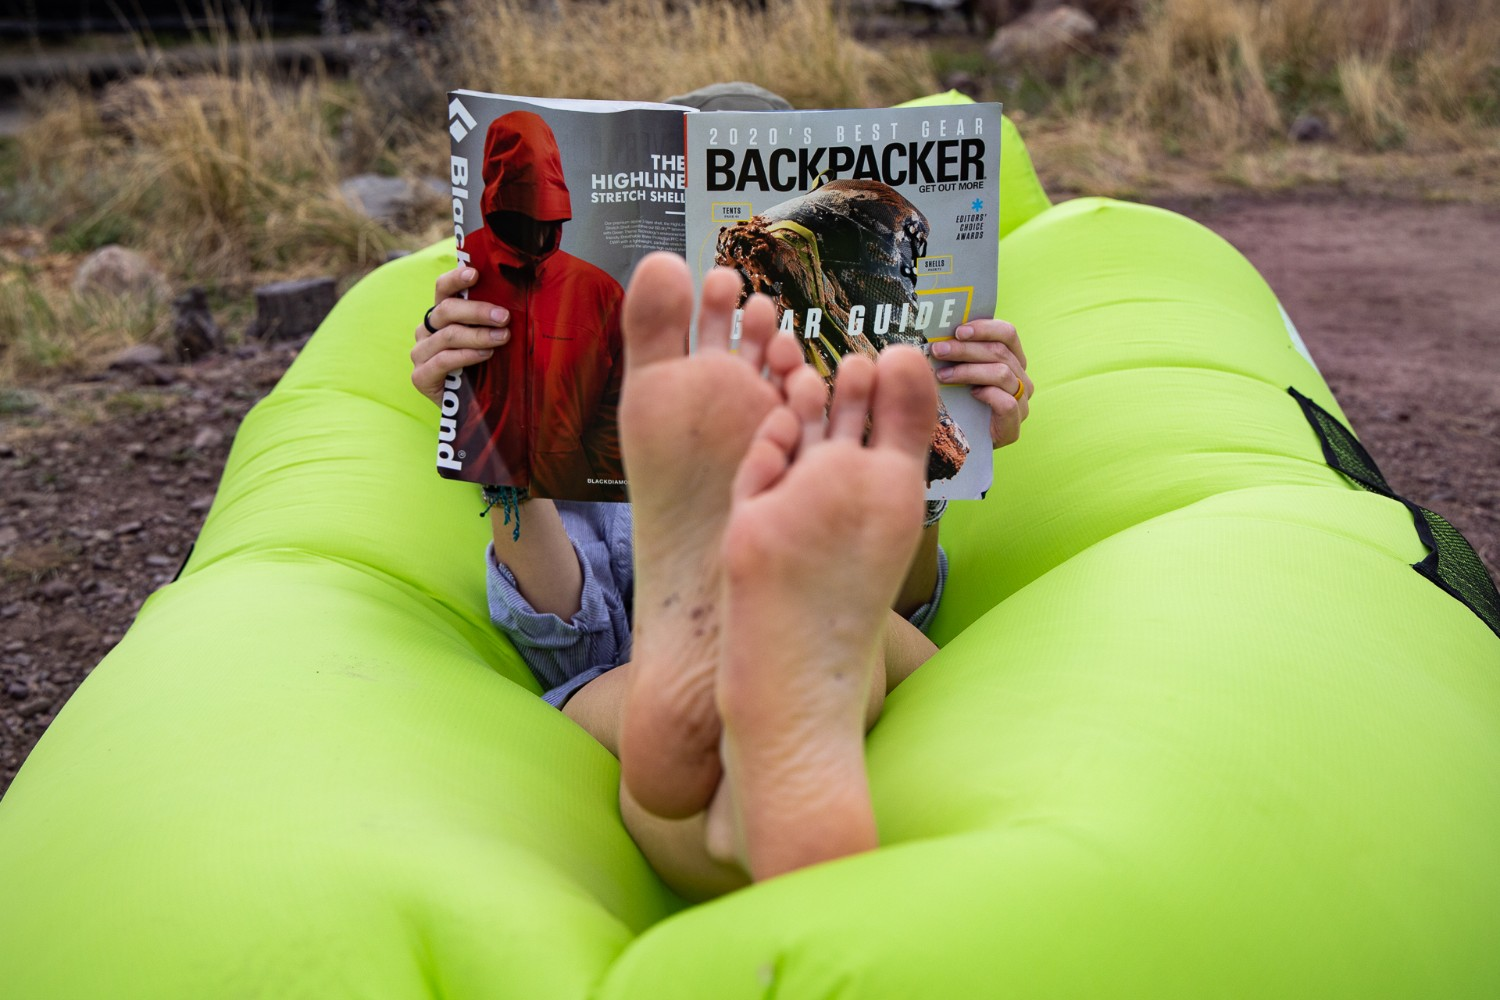 feet up relaxing on an inflatable while reading a magazine